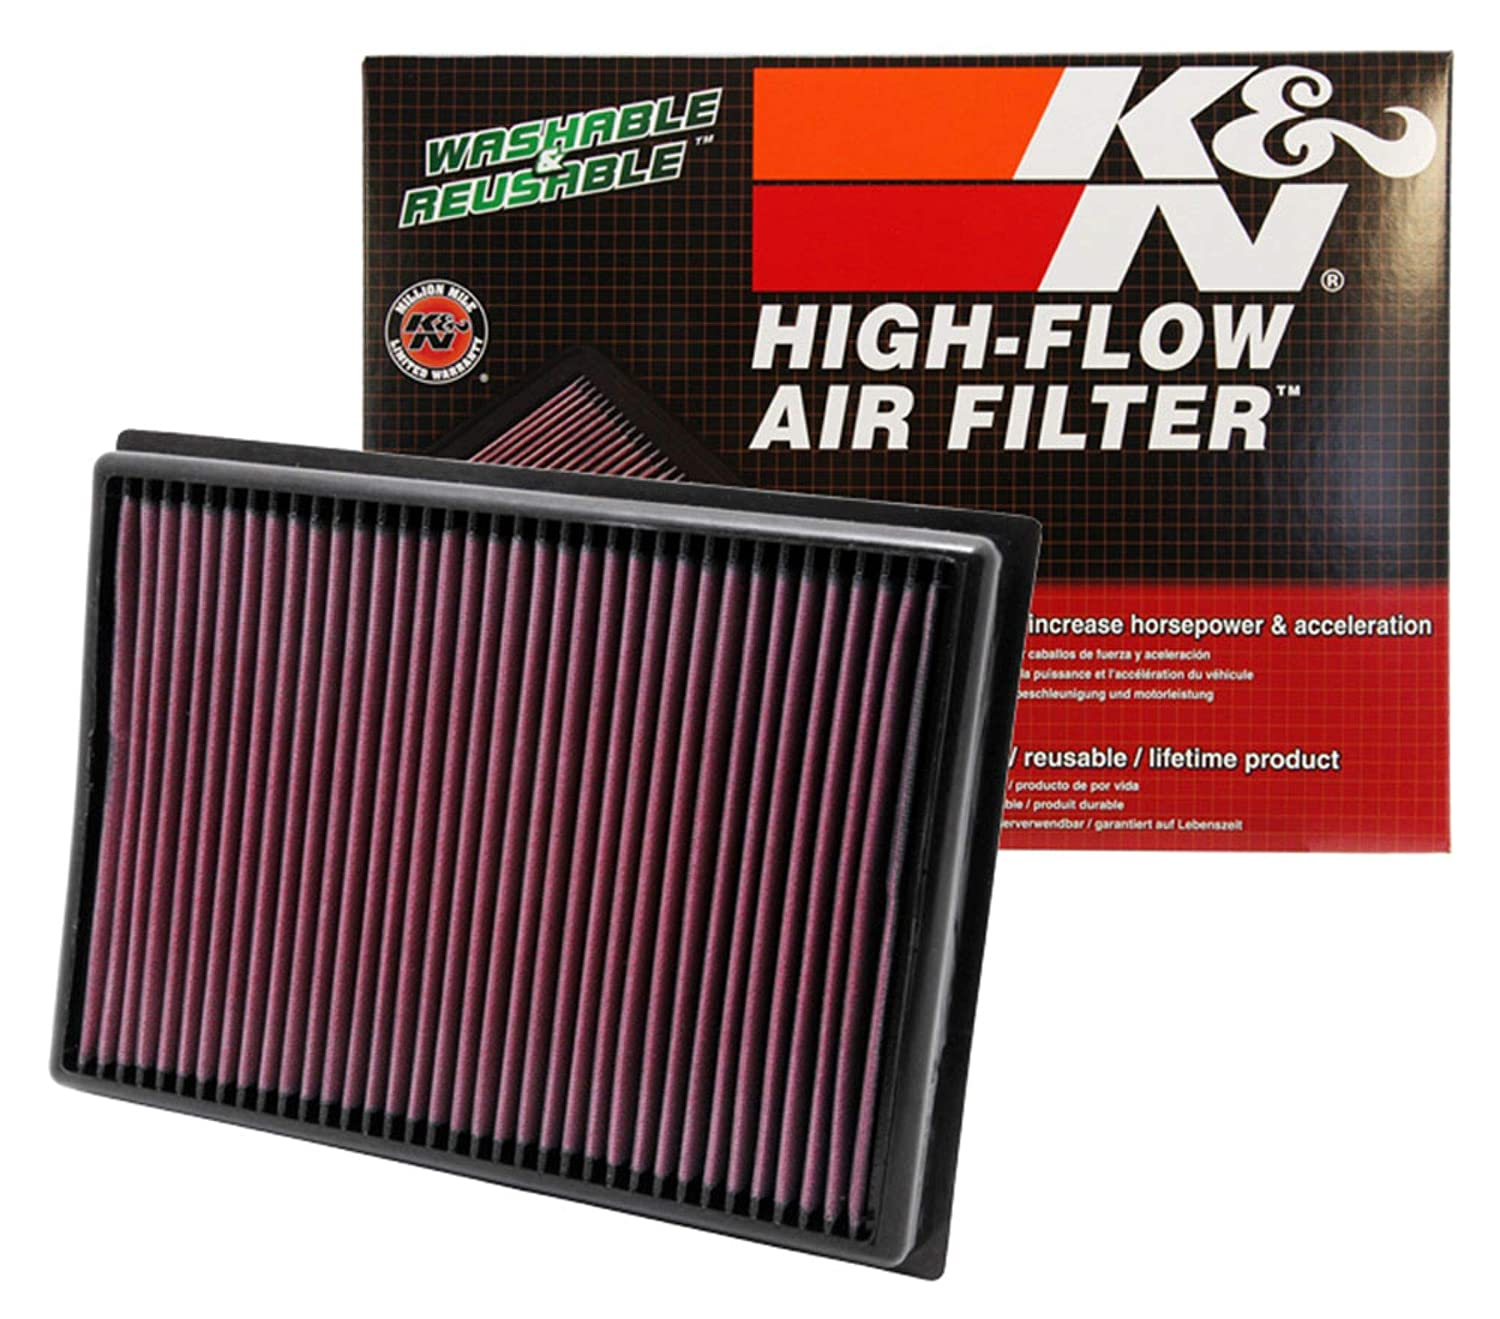 K&N engine air filter, washable and reusable: 2010-2019 Toyota/Lexus SUV V6/V8 (4runner, GX460, Land Cruiser, FJ Cruiser, Prado) 33-2438